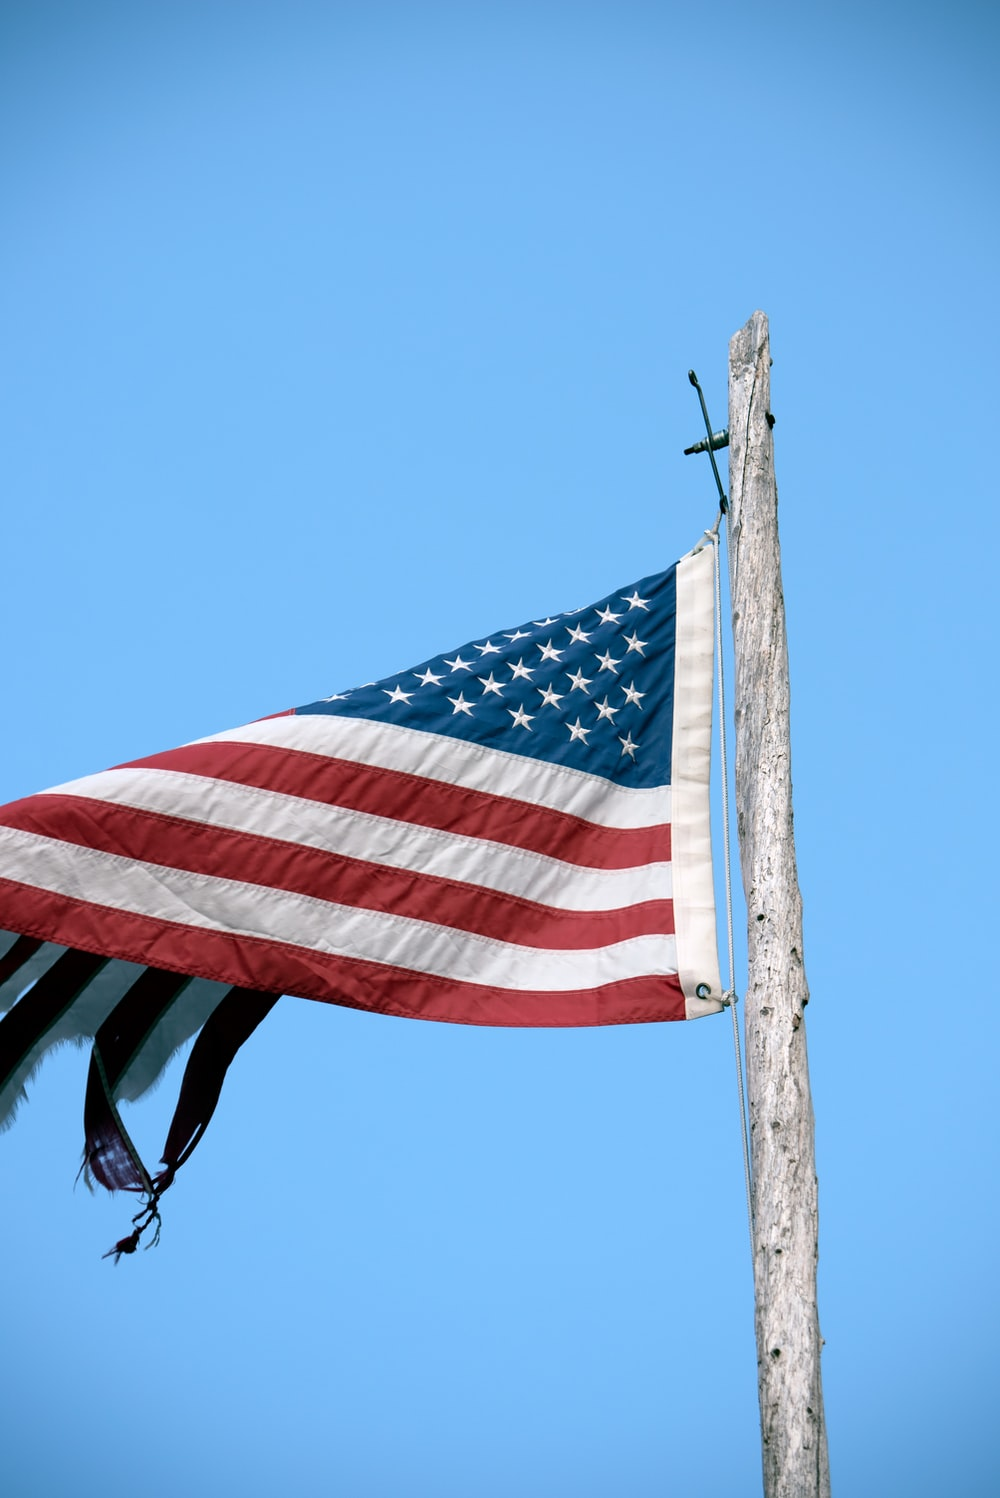 us a flag on brown wooden pole during daytime